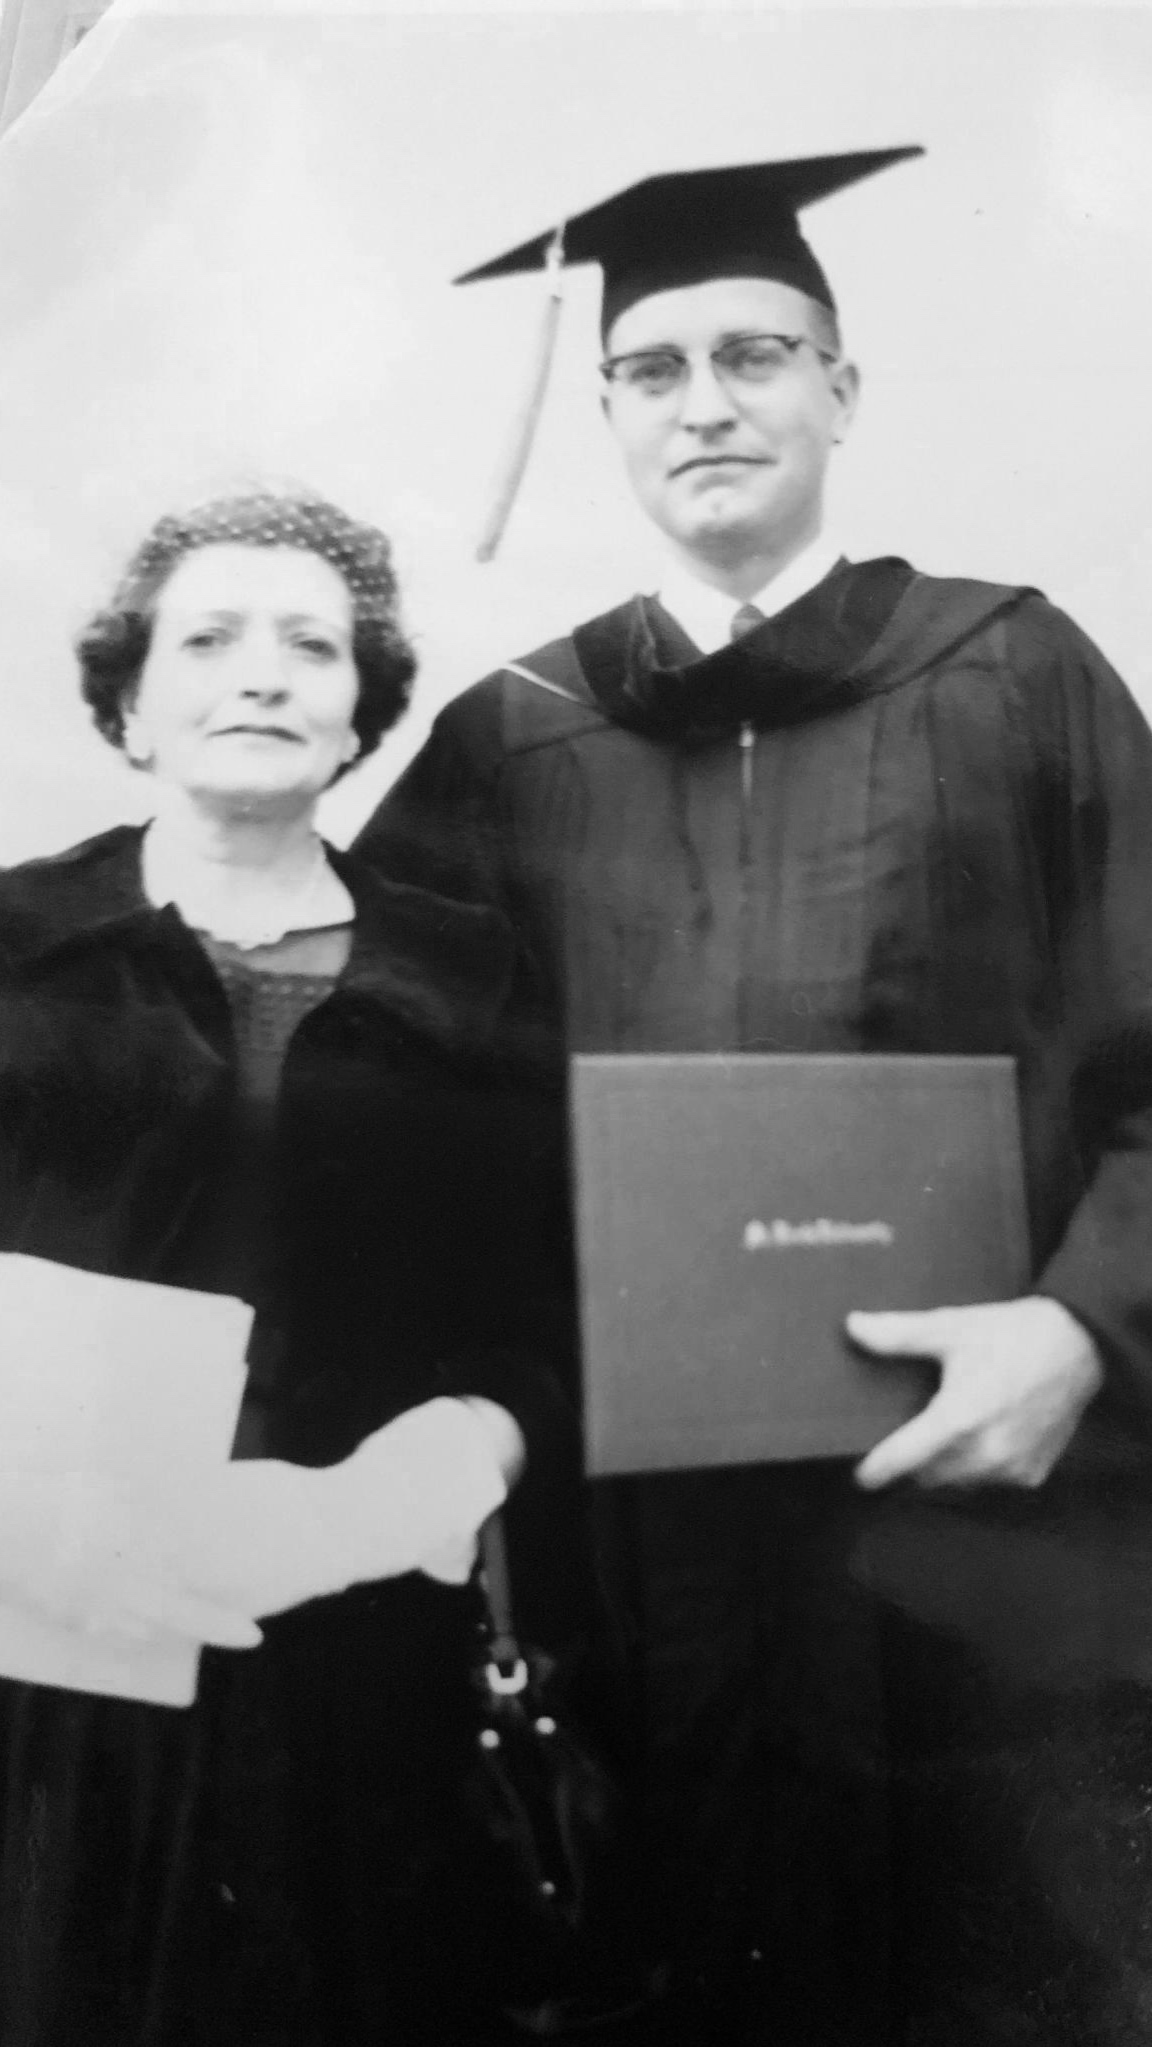 Robert Hartenberger with his mother at his Law School graduation.